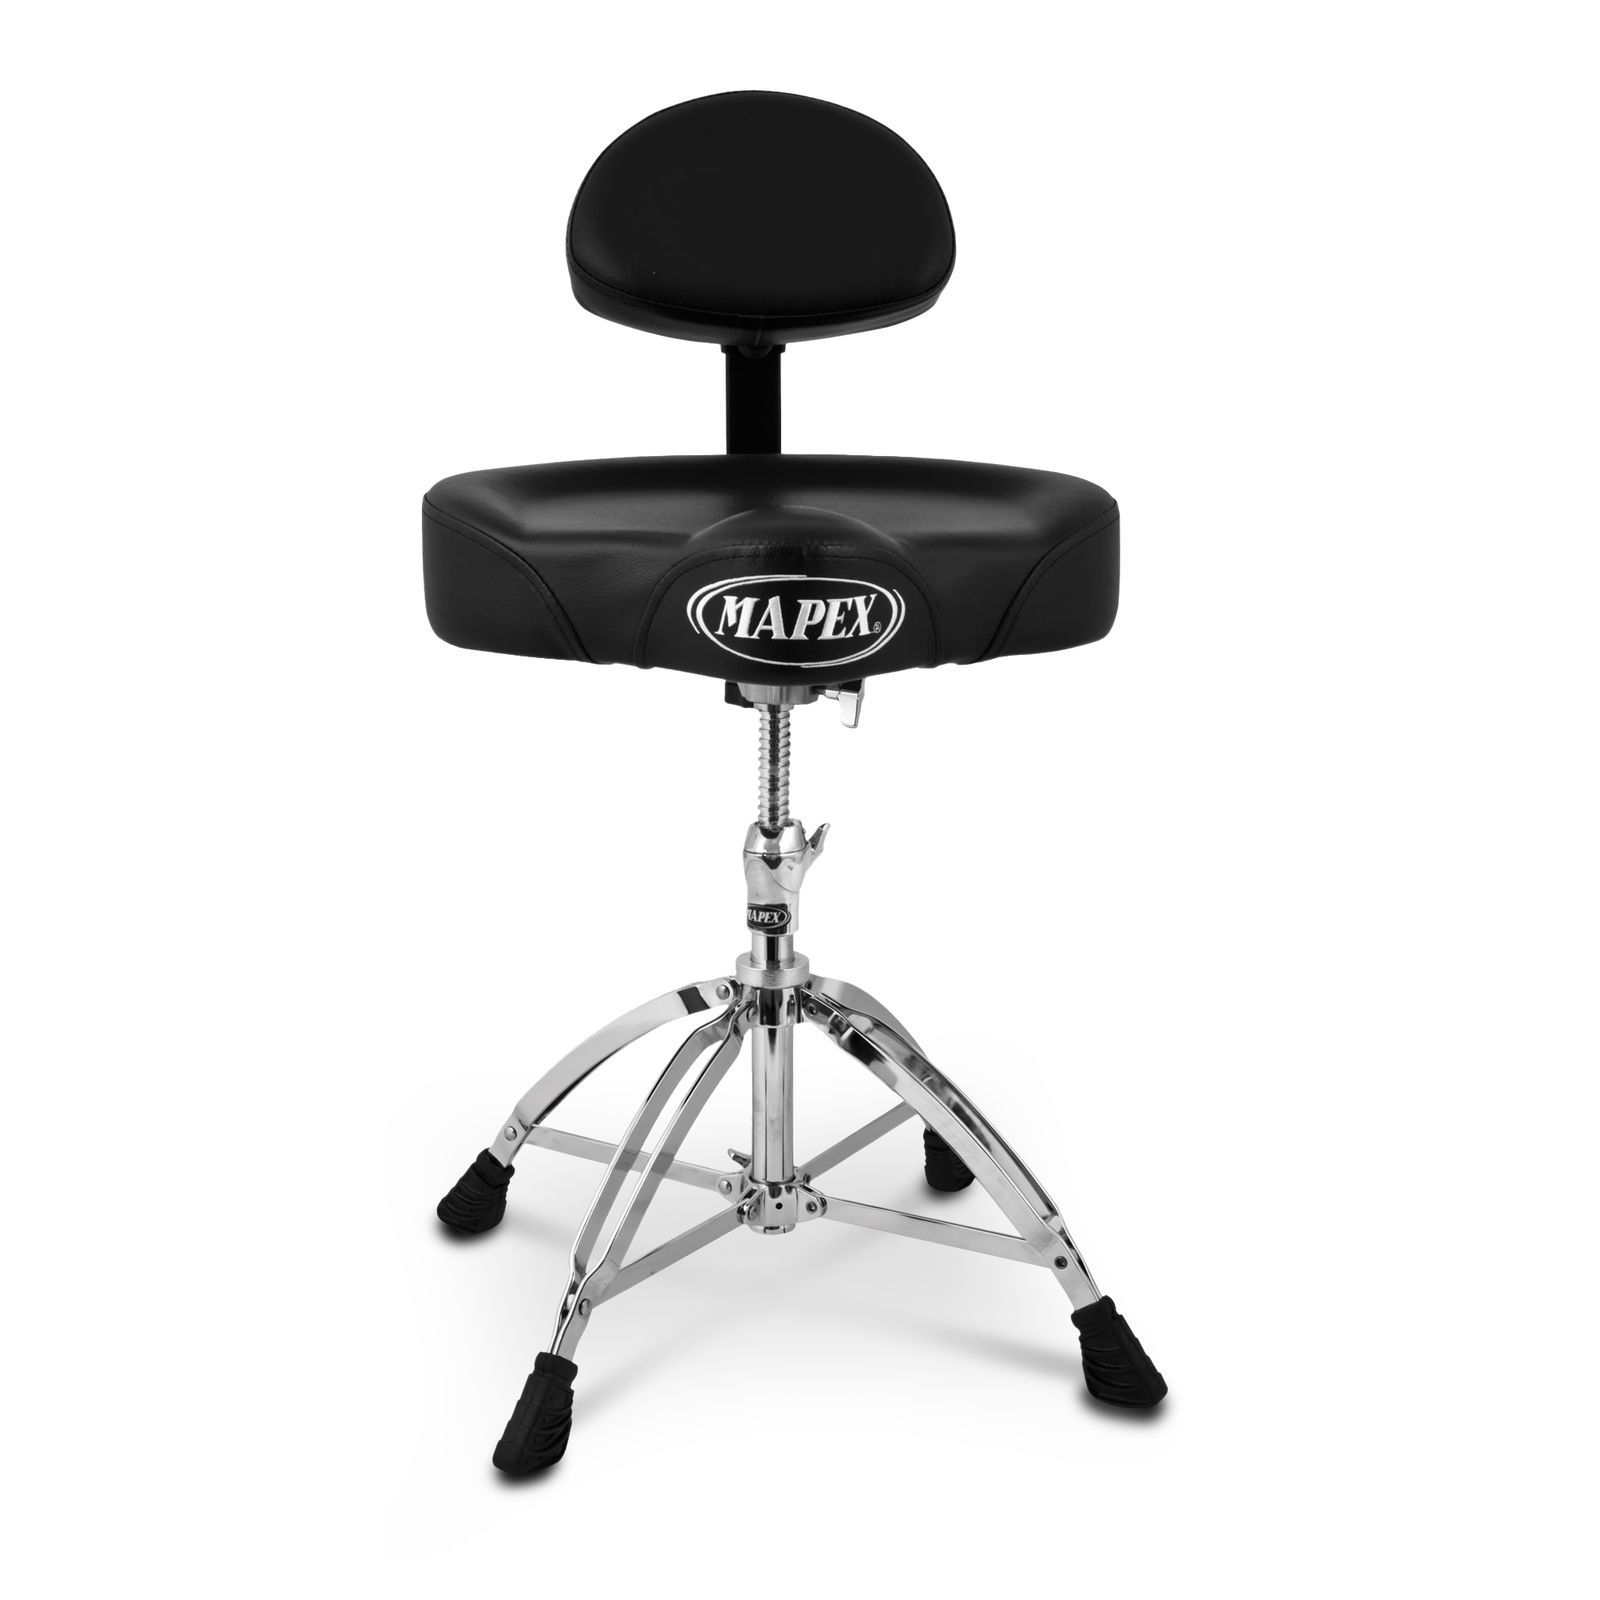 Mapex Drum Throne T775, Saddle Produktbillede